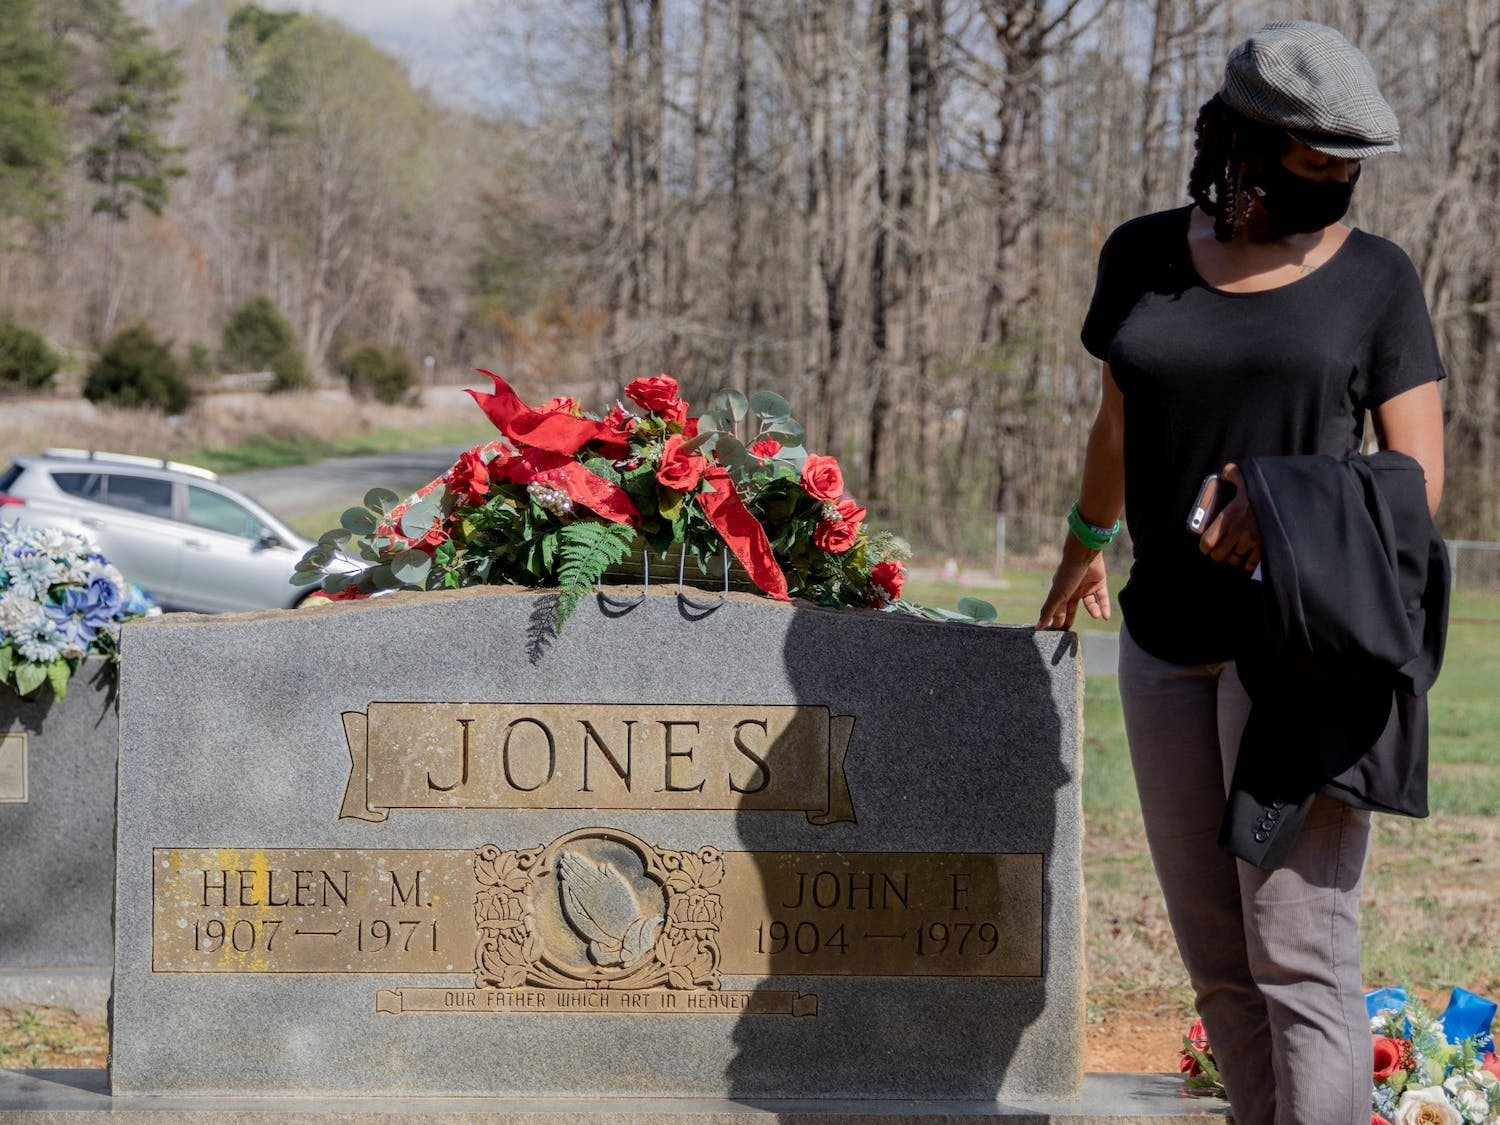 Shontea Smith, executive director of United Voices of Efland-Cheeks, stands next to a grave in her family's plot in Cheeks Crossing, North Carolina. Smith wrote a letter detailing the impact that development has had on the Cheeks community, and why the current development plans are harmful to her community.